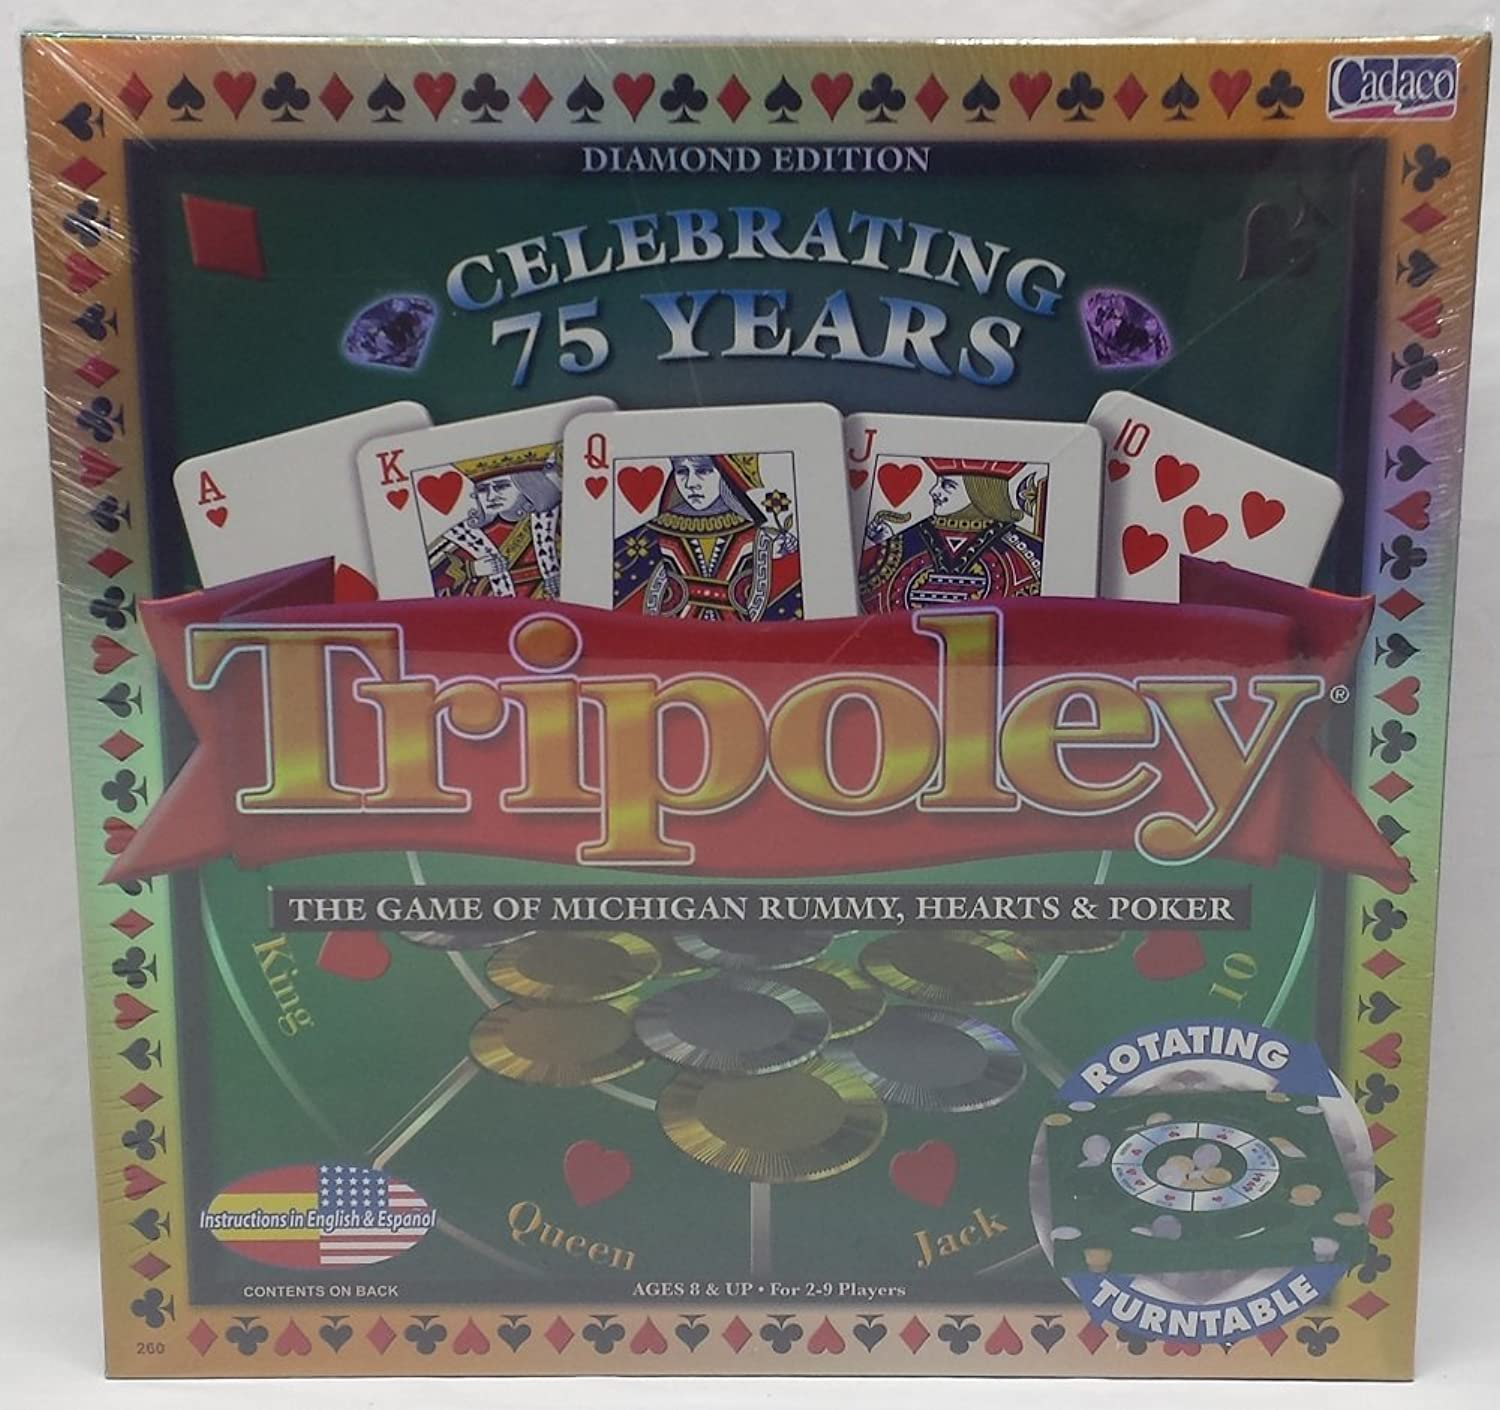 Tripoley Special Edition in Tin Box